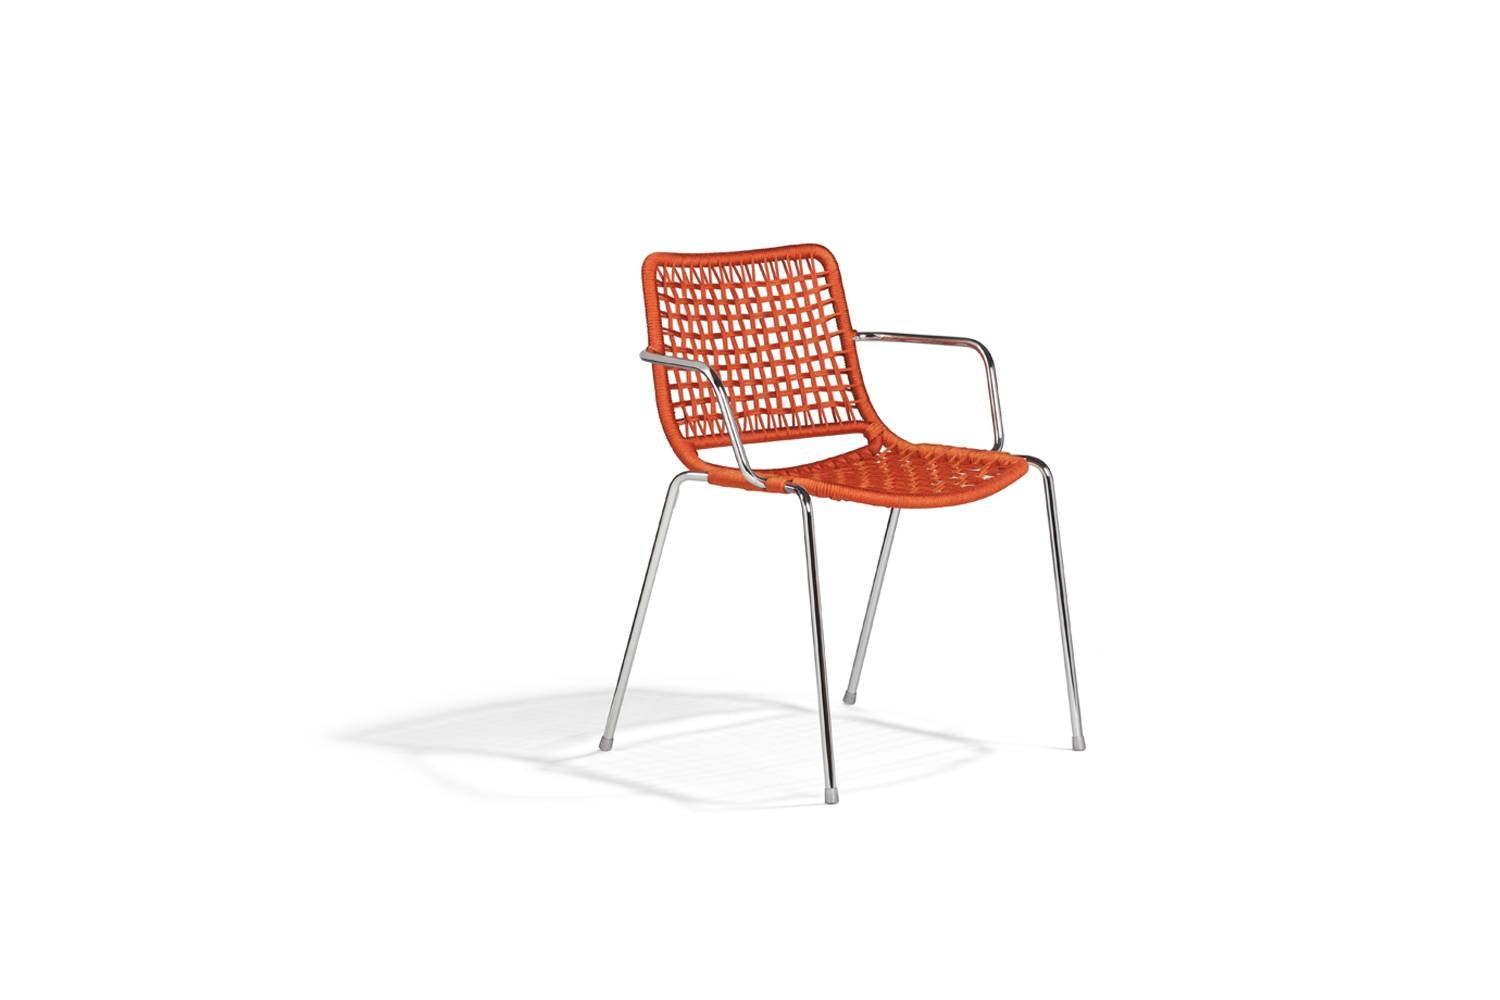 Egao Chair by Toan Nguyen for Accademia